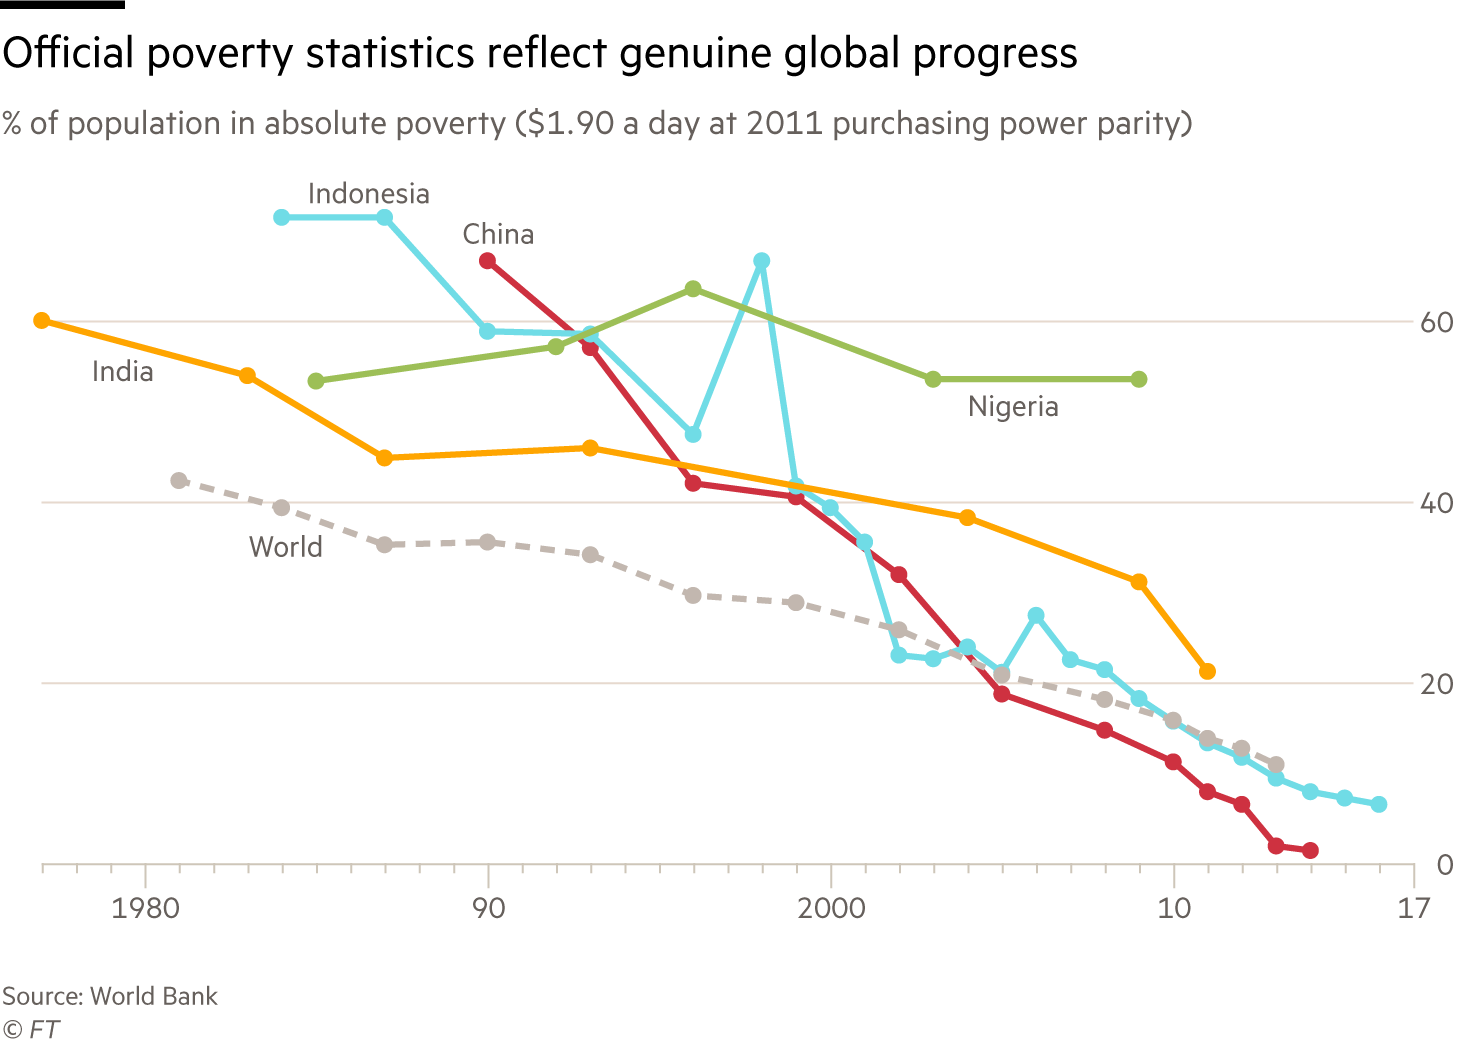 Chart showing rapid decrease in extreme poverty